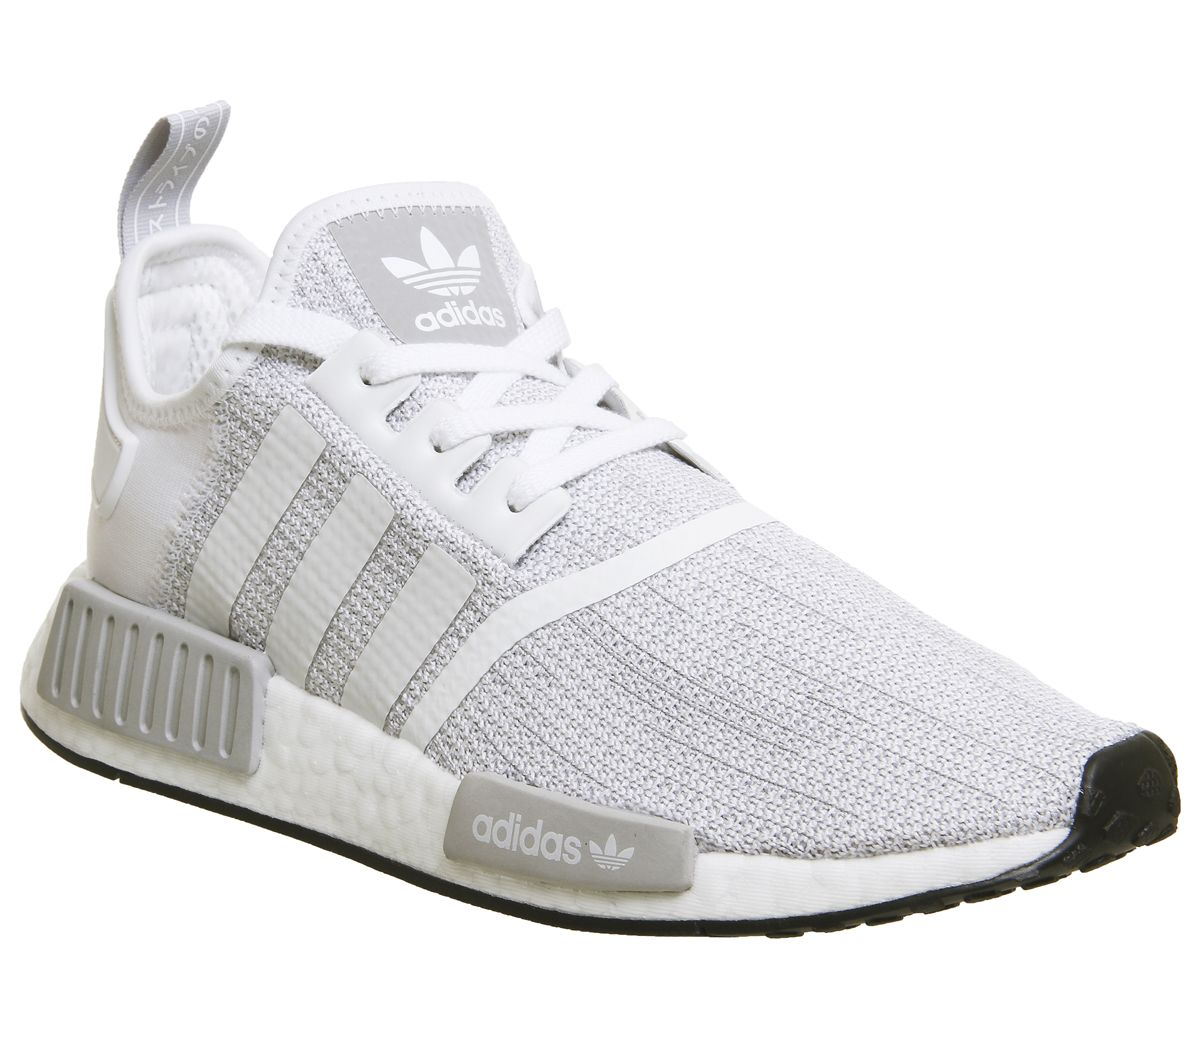 quality design 34aad 83460 Nmd R1 Trainers